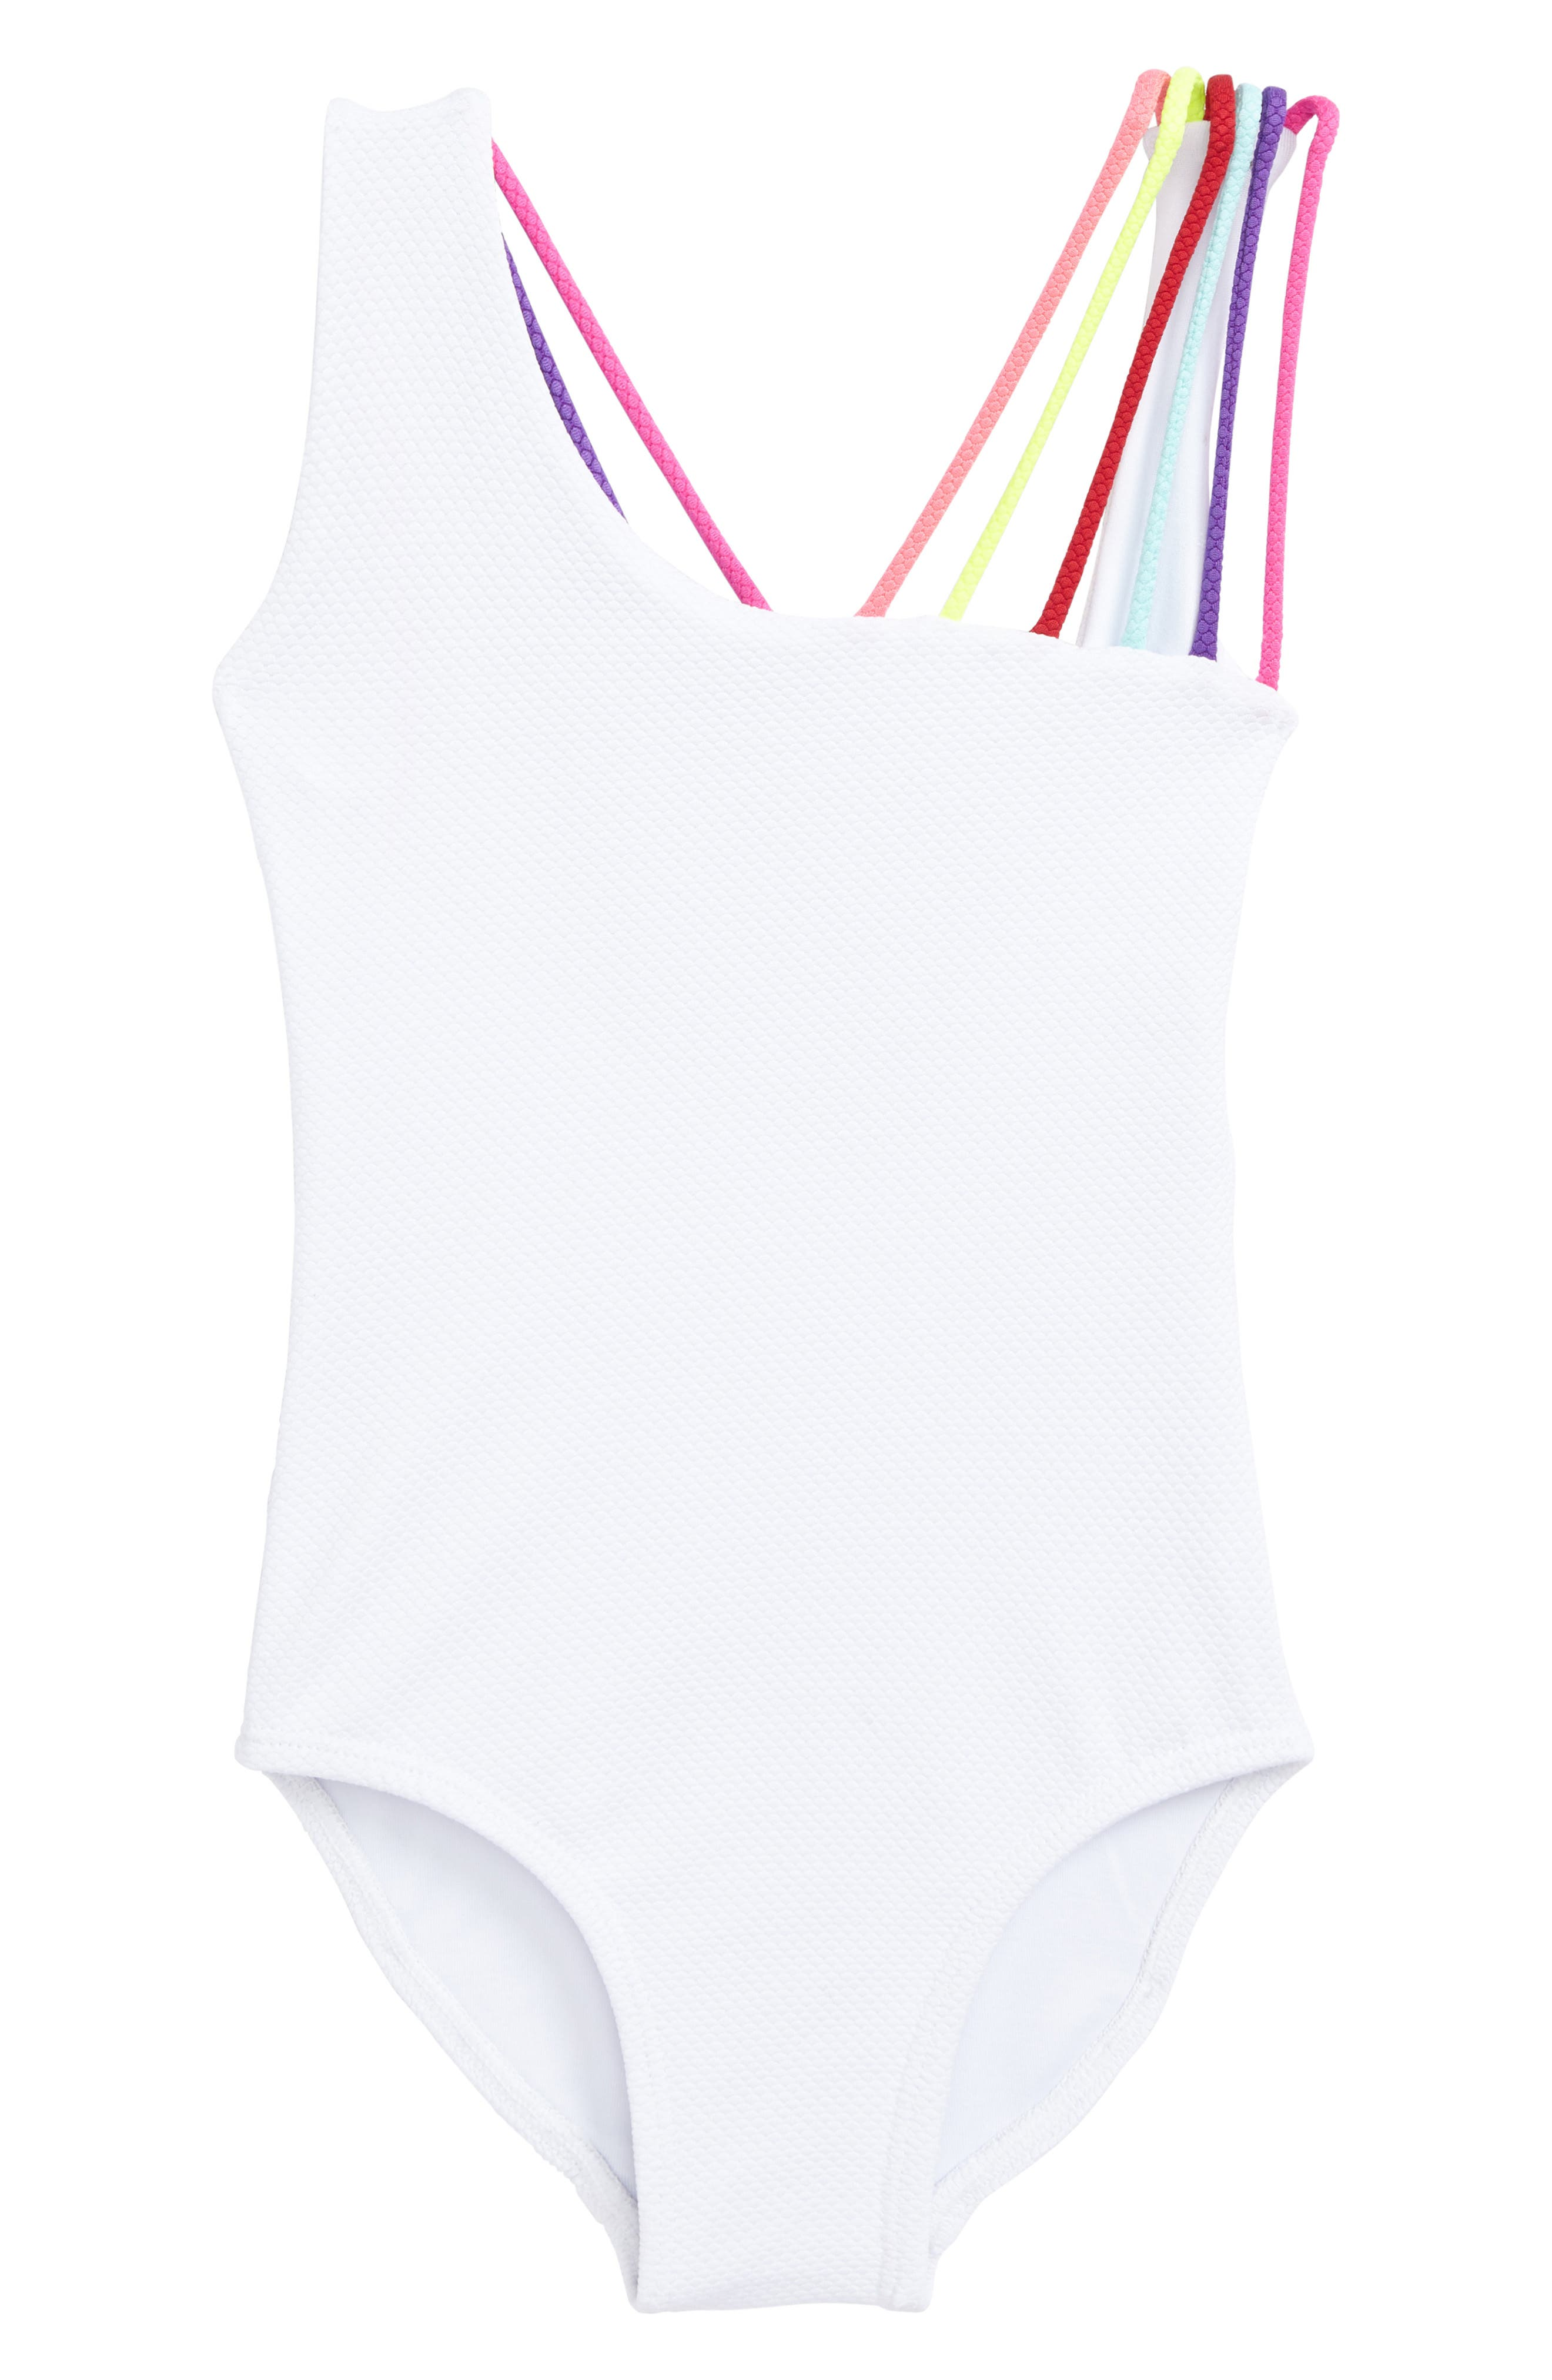 Alternate Image 1 Selected - Little Peixoto Olivia One-Piece Swimsuit (Toddler Girls & Little Girls)